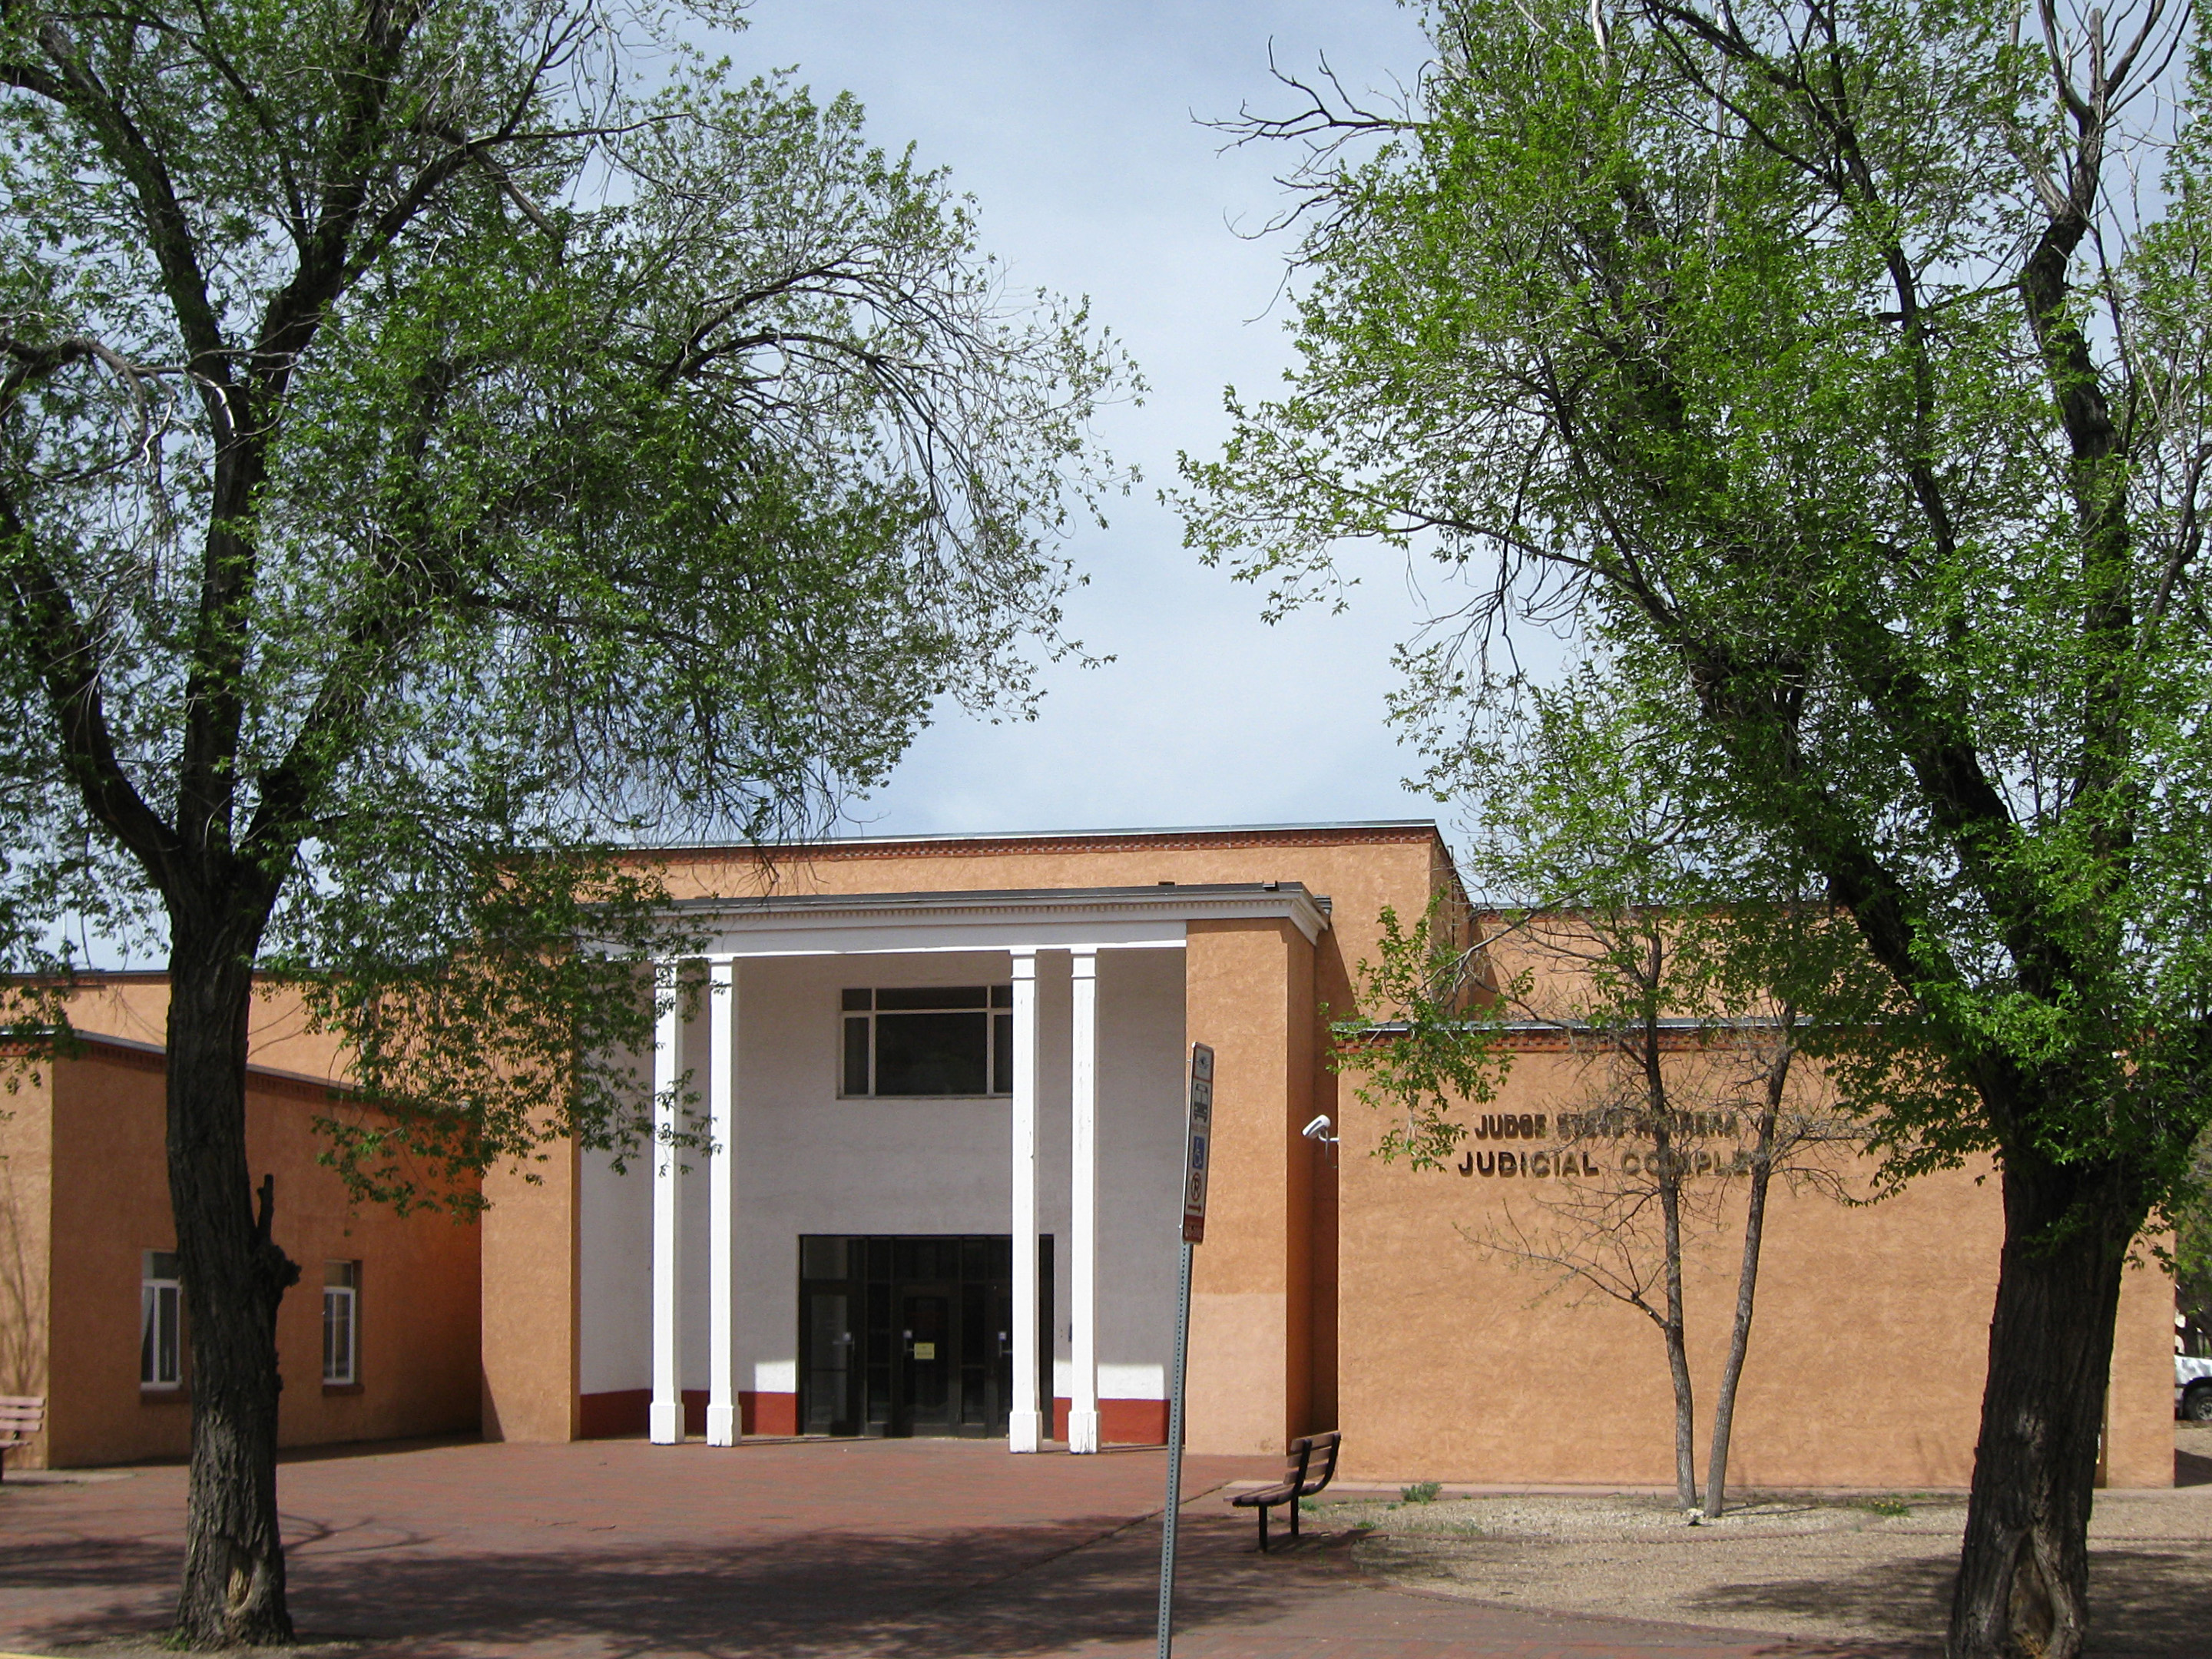 santa fe county Santa fe, new mexico - official city of santa fe government website provides information and online services for residents of, businesses in, and visitors to santa fe, new mexico.